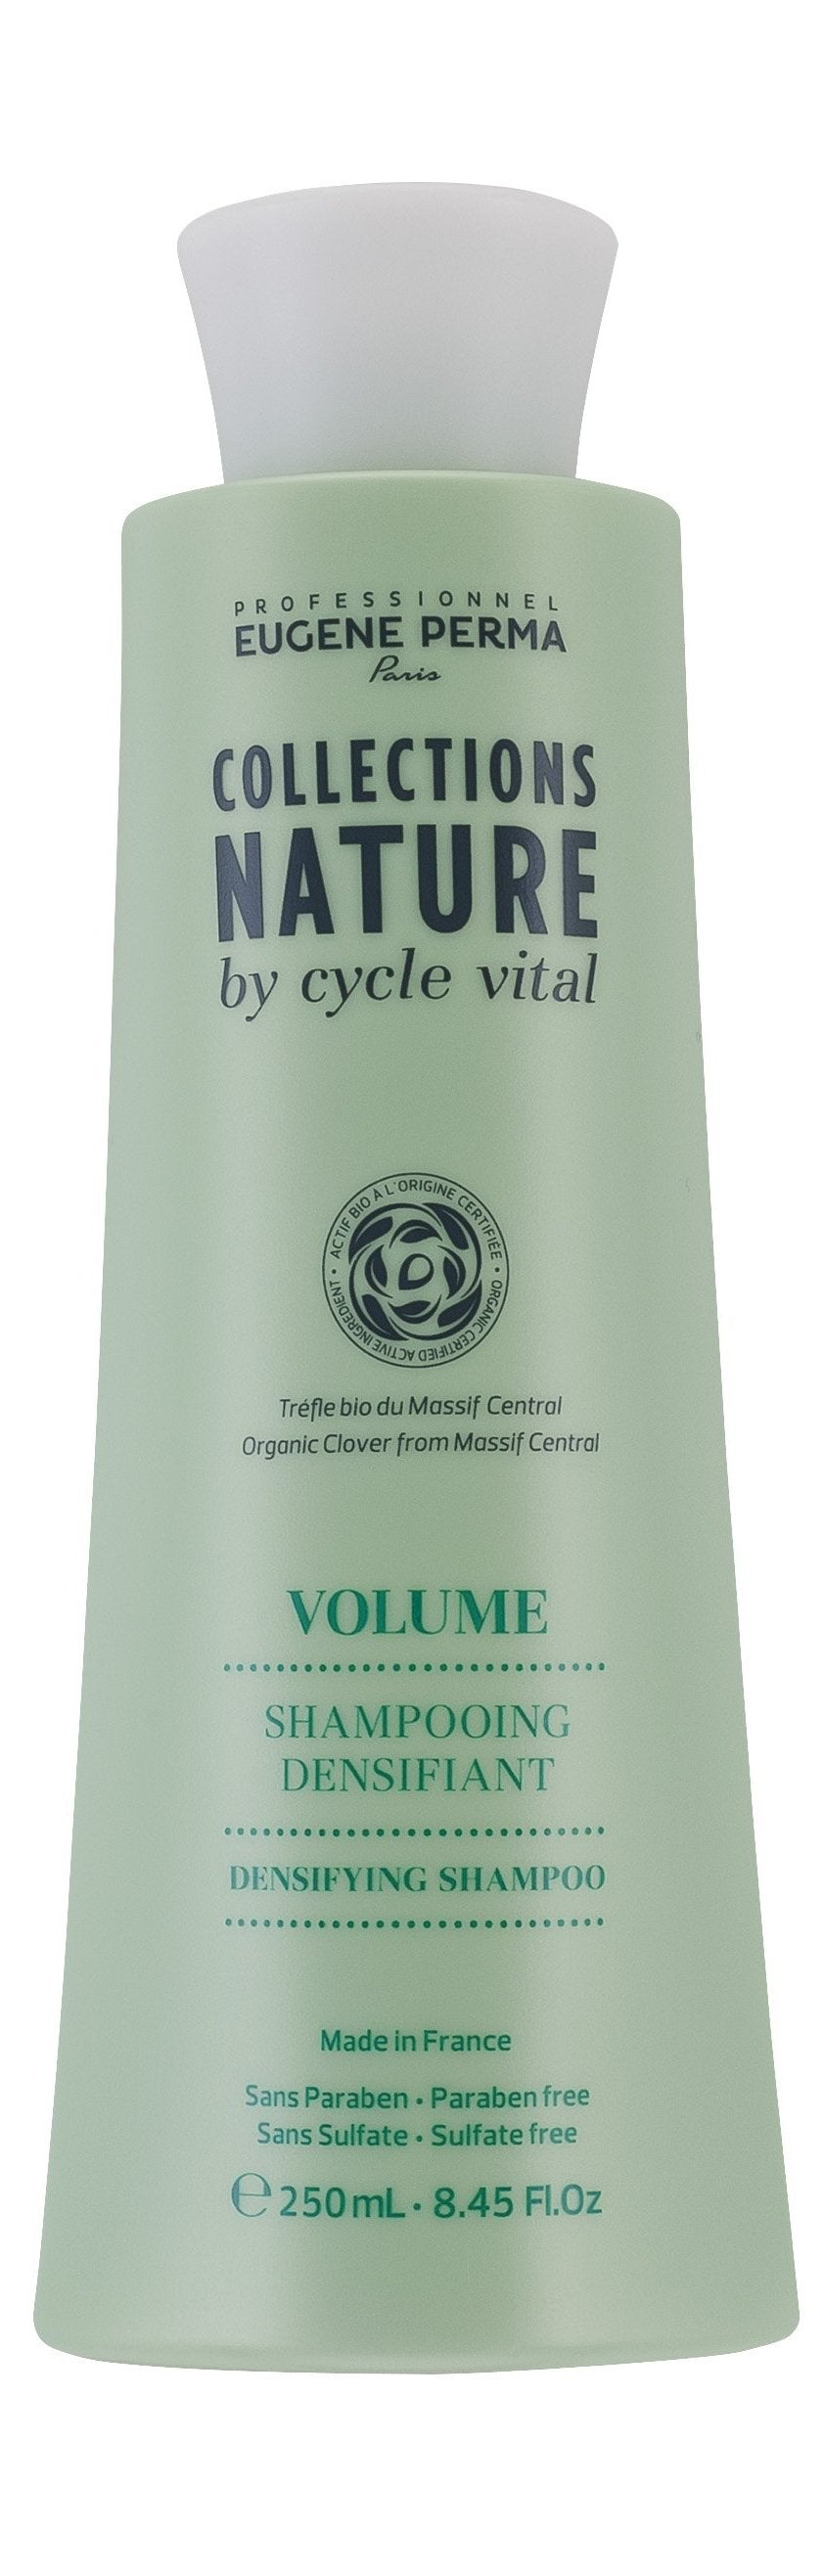 COLLECTION NATURE Shampoing Densifiant 250 ML | Eugène Perma Professionnel